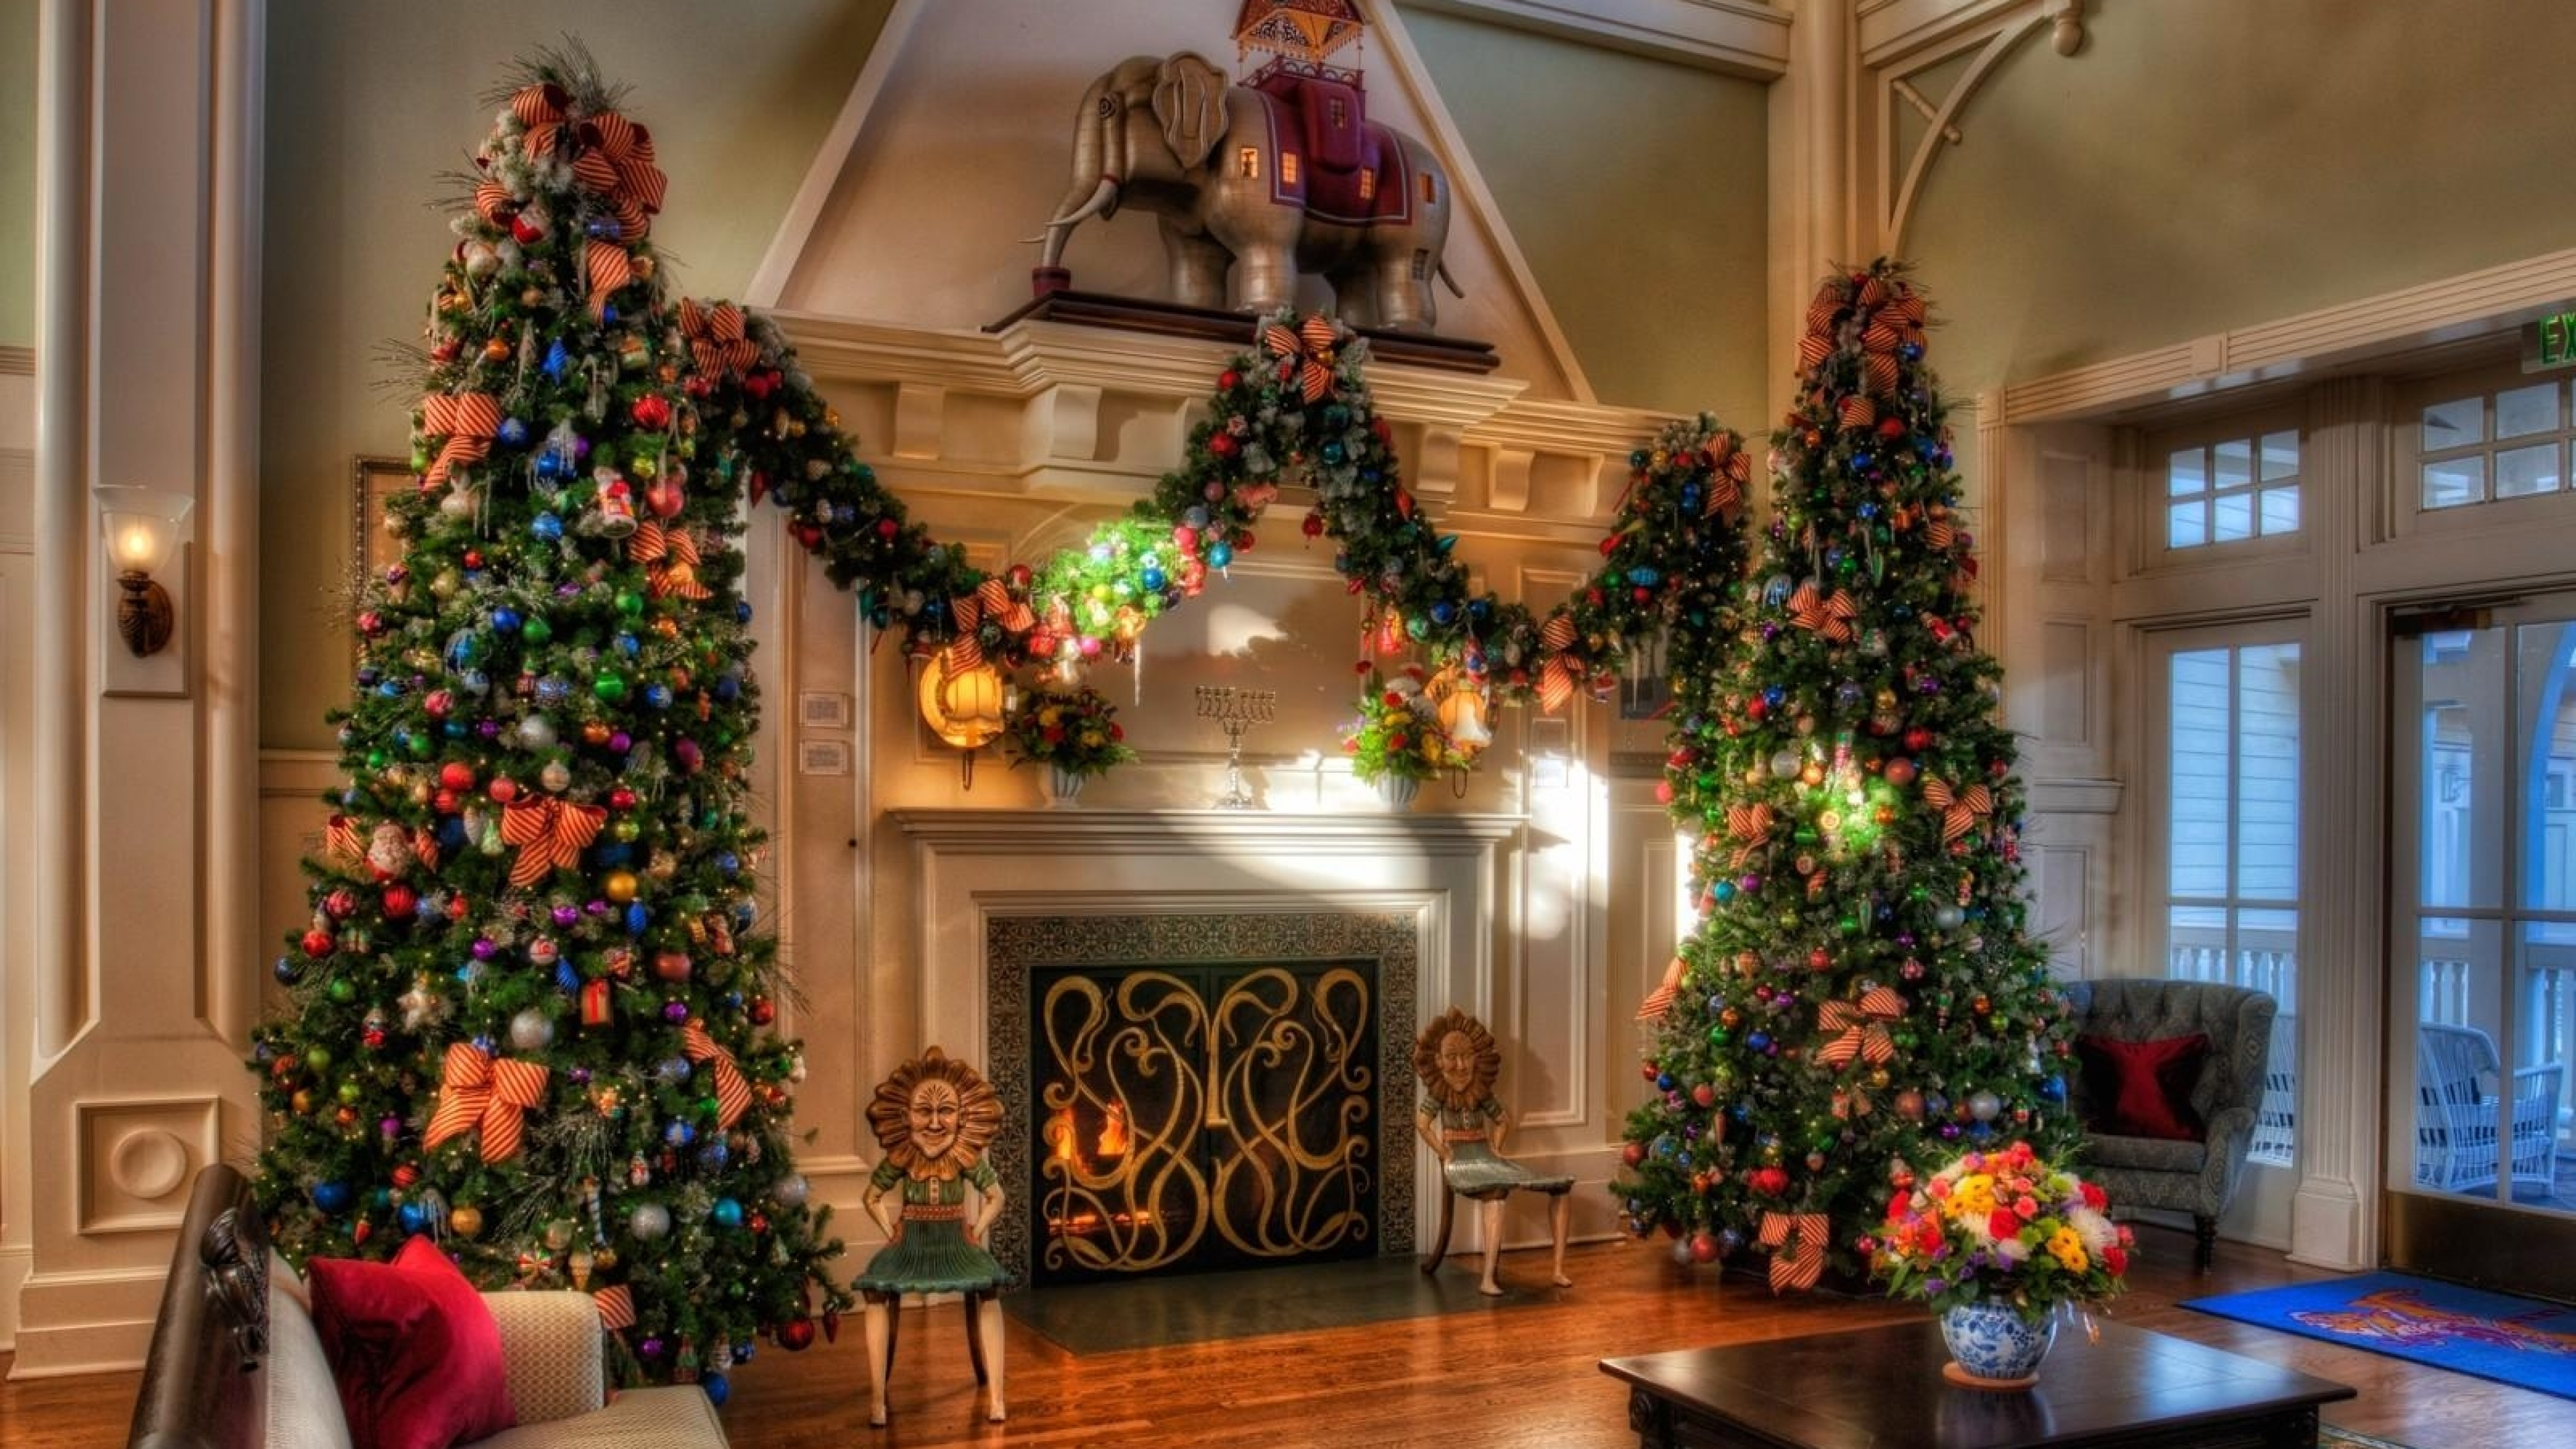 4k Christmas Fireplaces Wallpapers High Quality Download